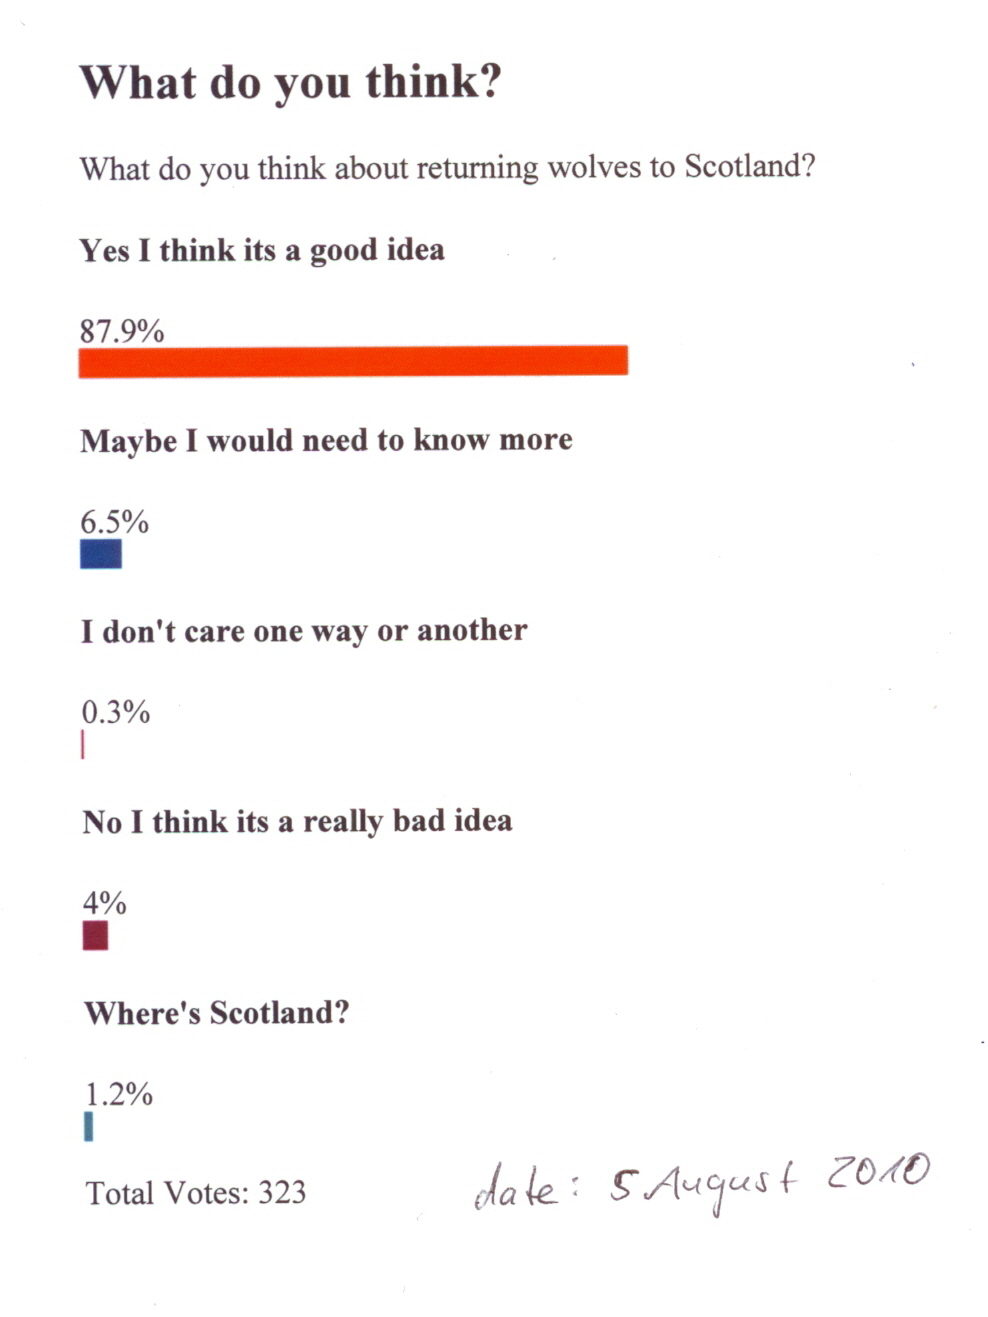 Scan_Voting_Wolves_in_Scotland.jpg